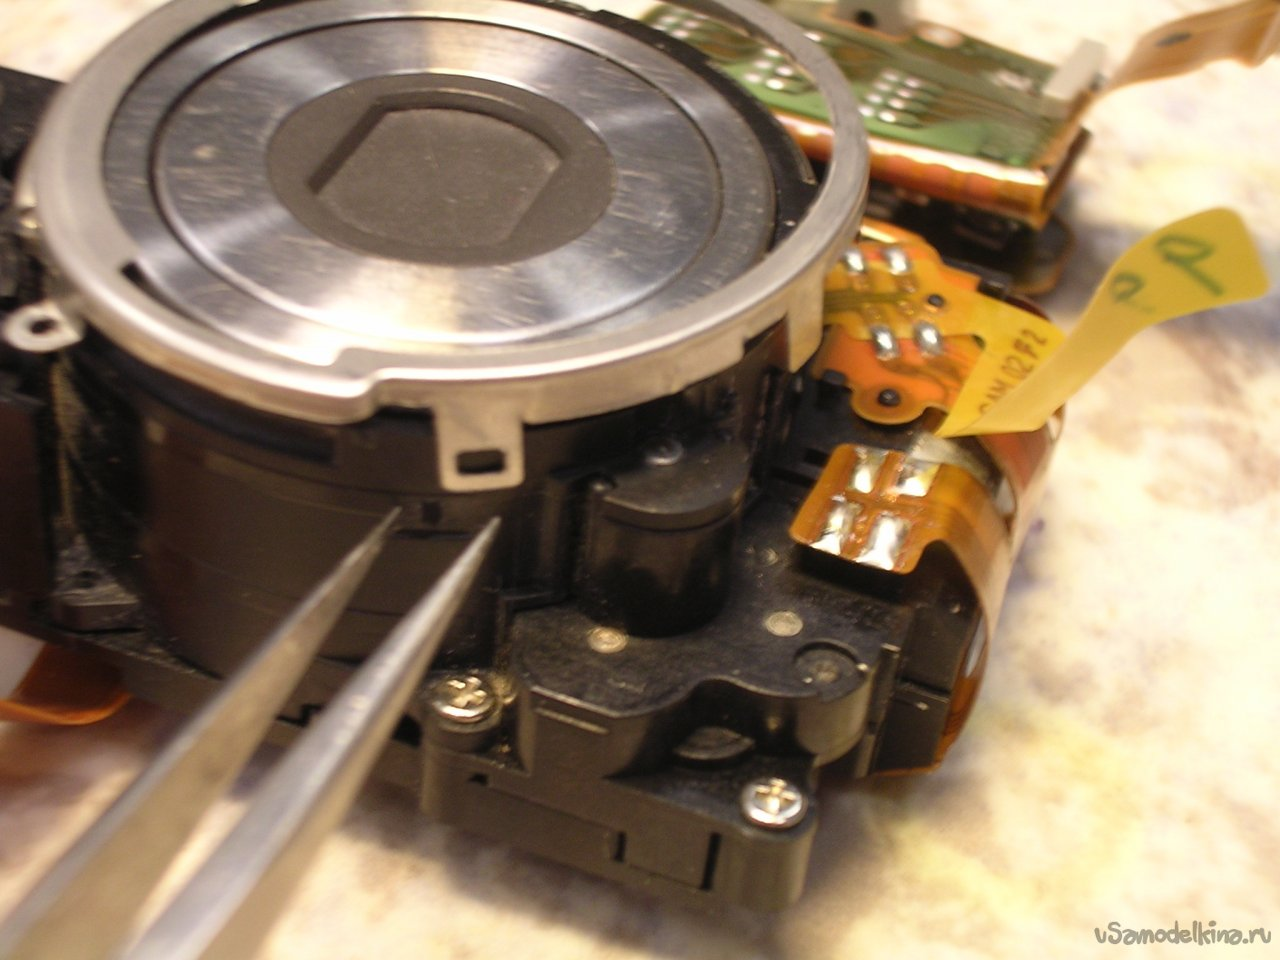 We clean the CANON ixus IIs camera lens from sand